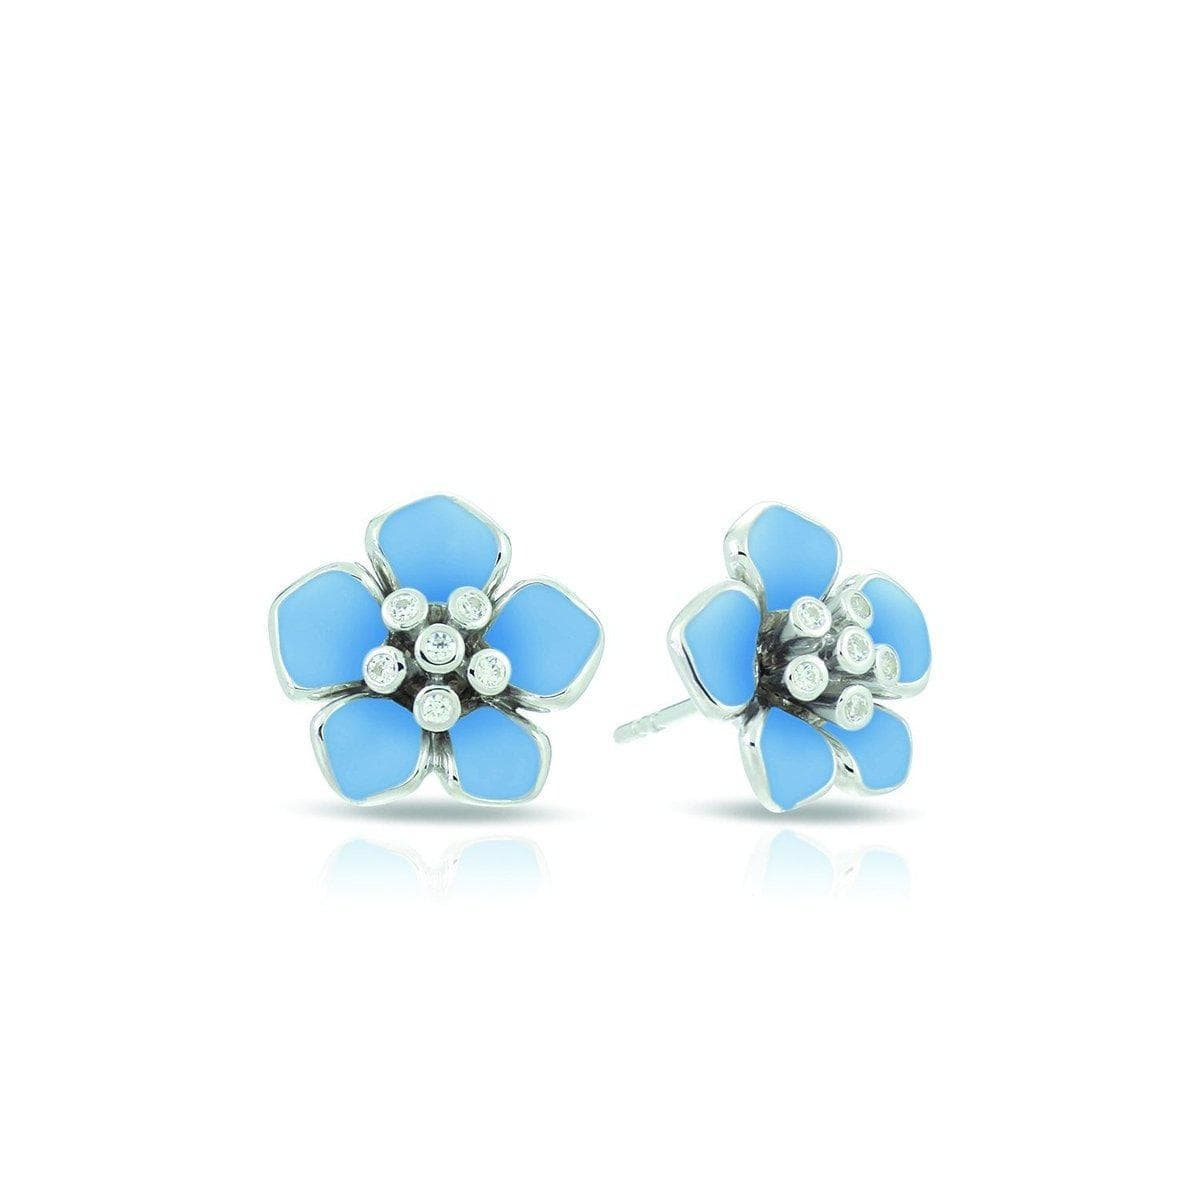 Forget-Me-Not Serenity Blue Earrings-Belle Etoile-Renee Taylor Gallery